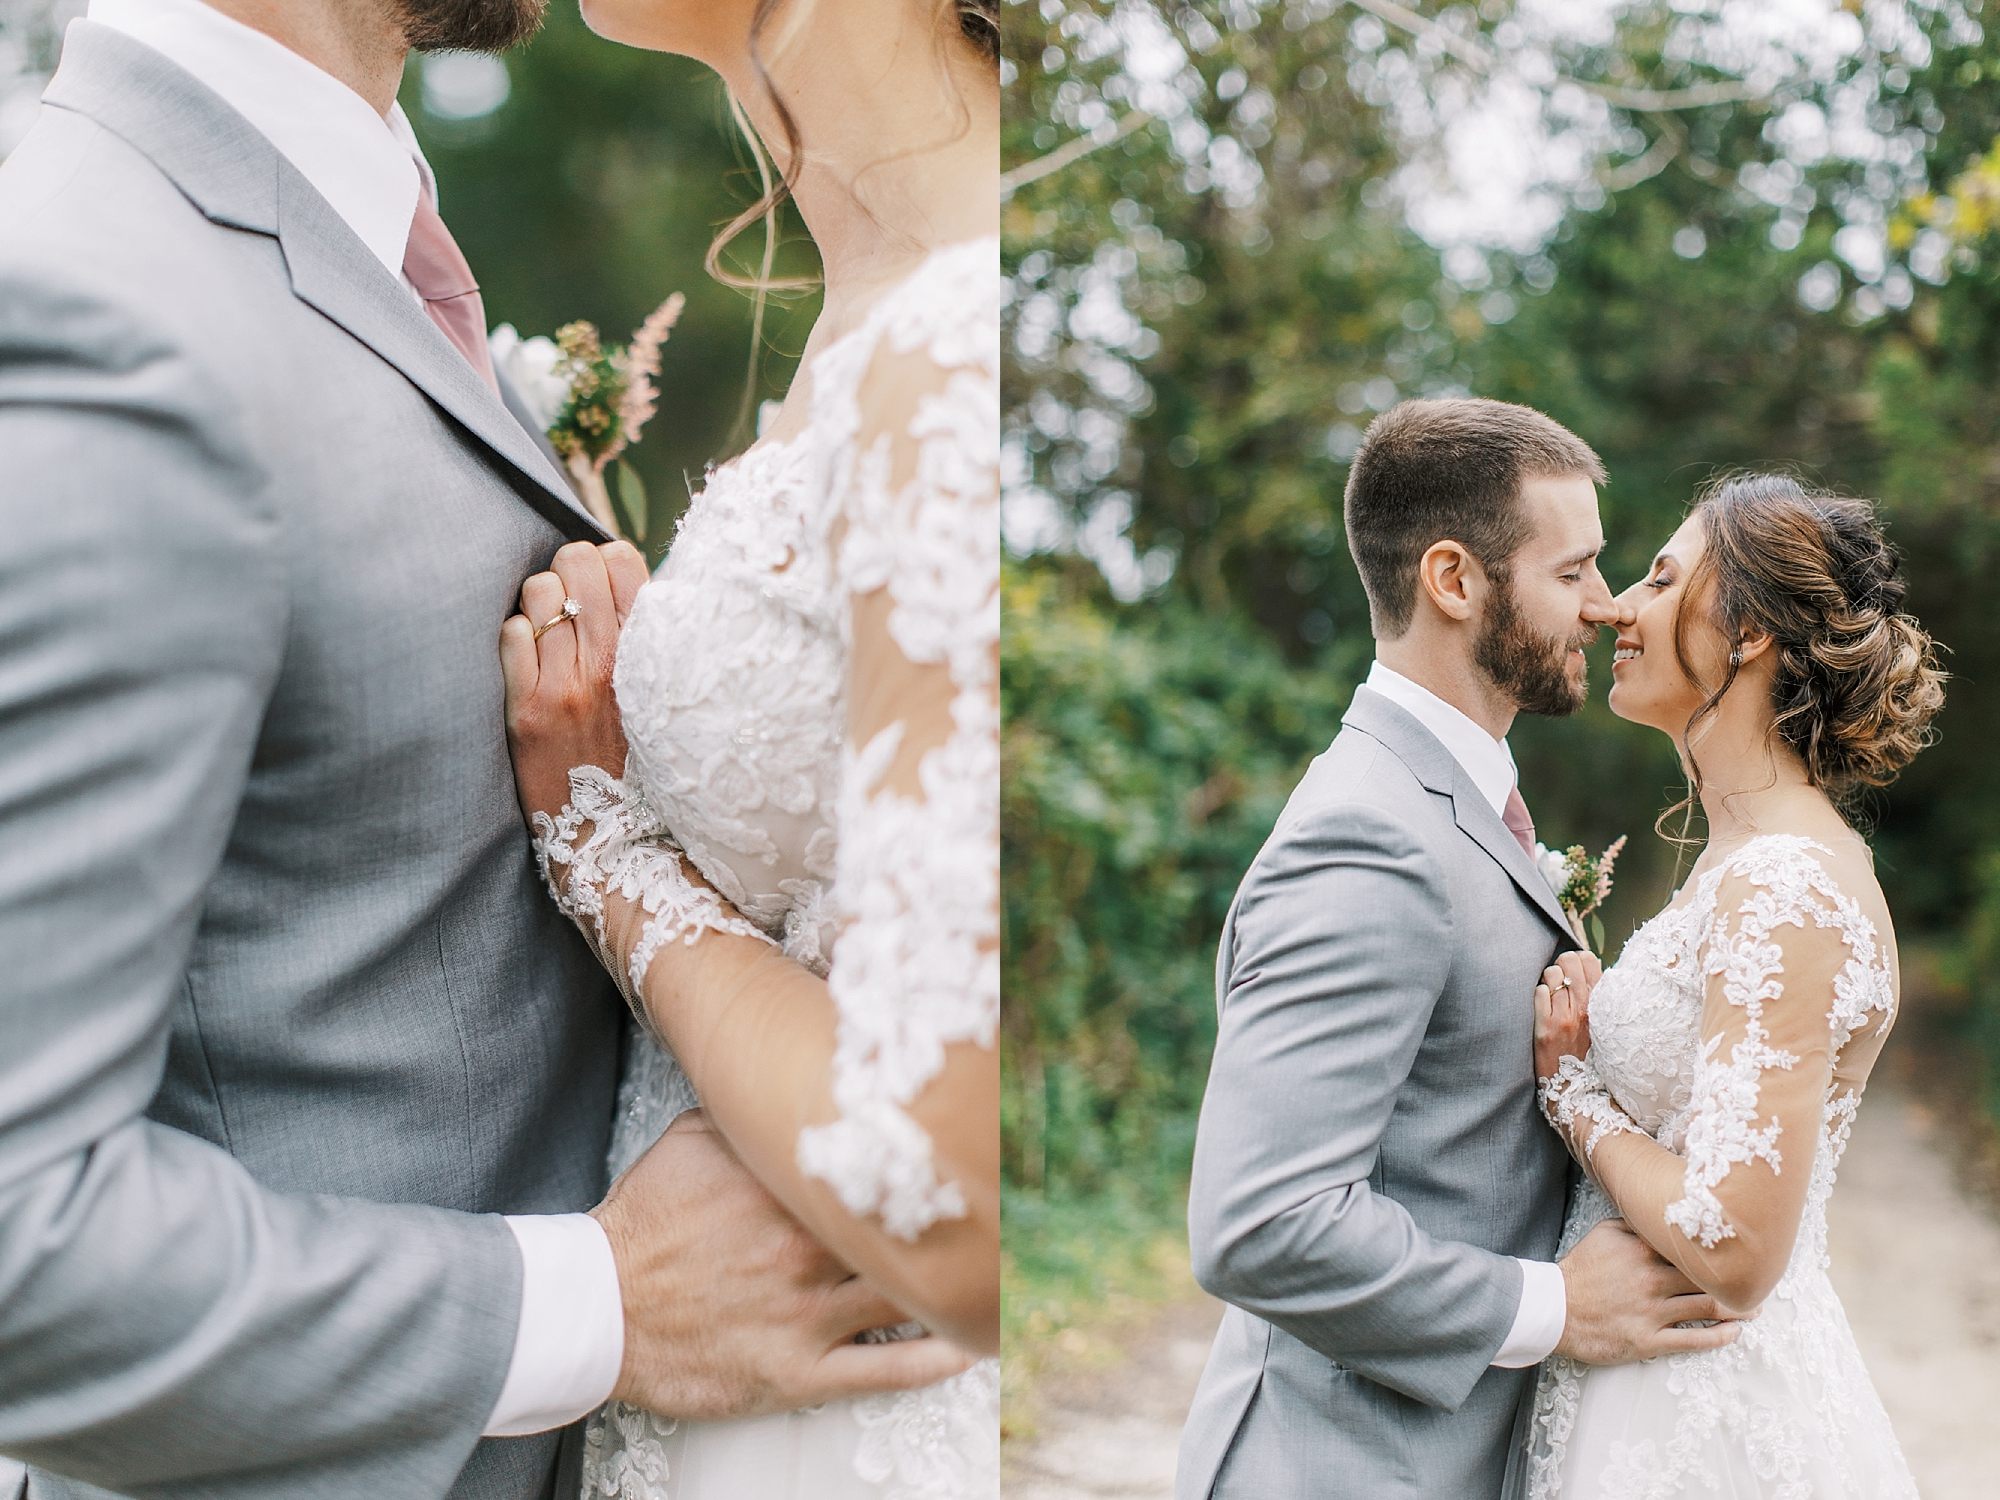 Sweet Garden Wedding Photography Abbie Holmes Estate in Cape May NJ by Magdalena Studios 0053